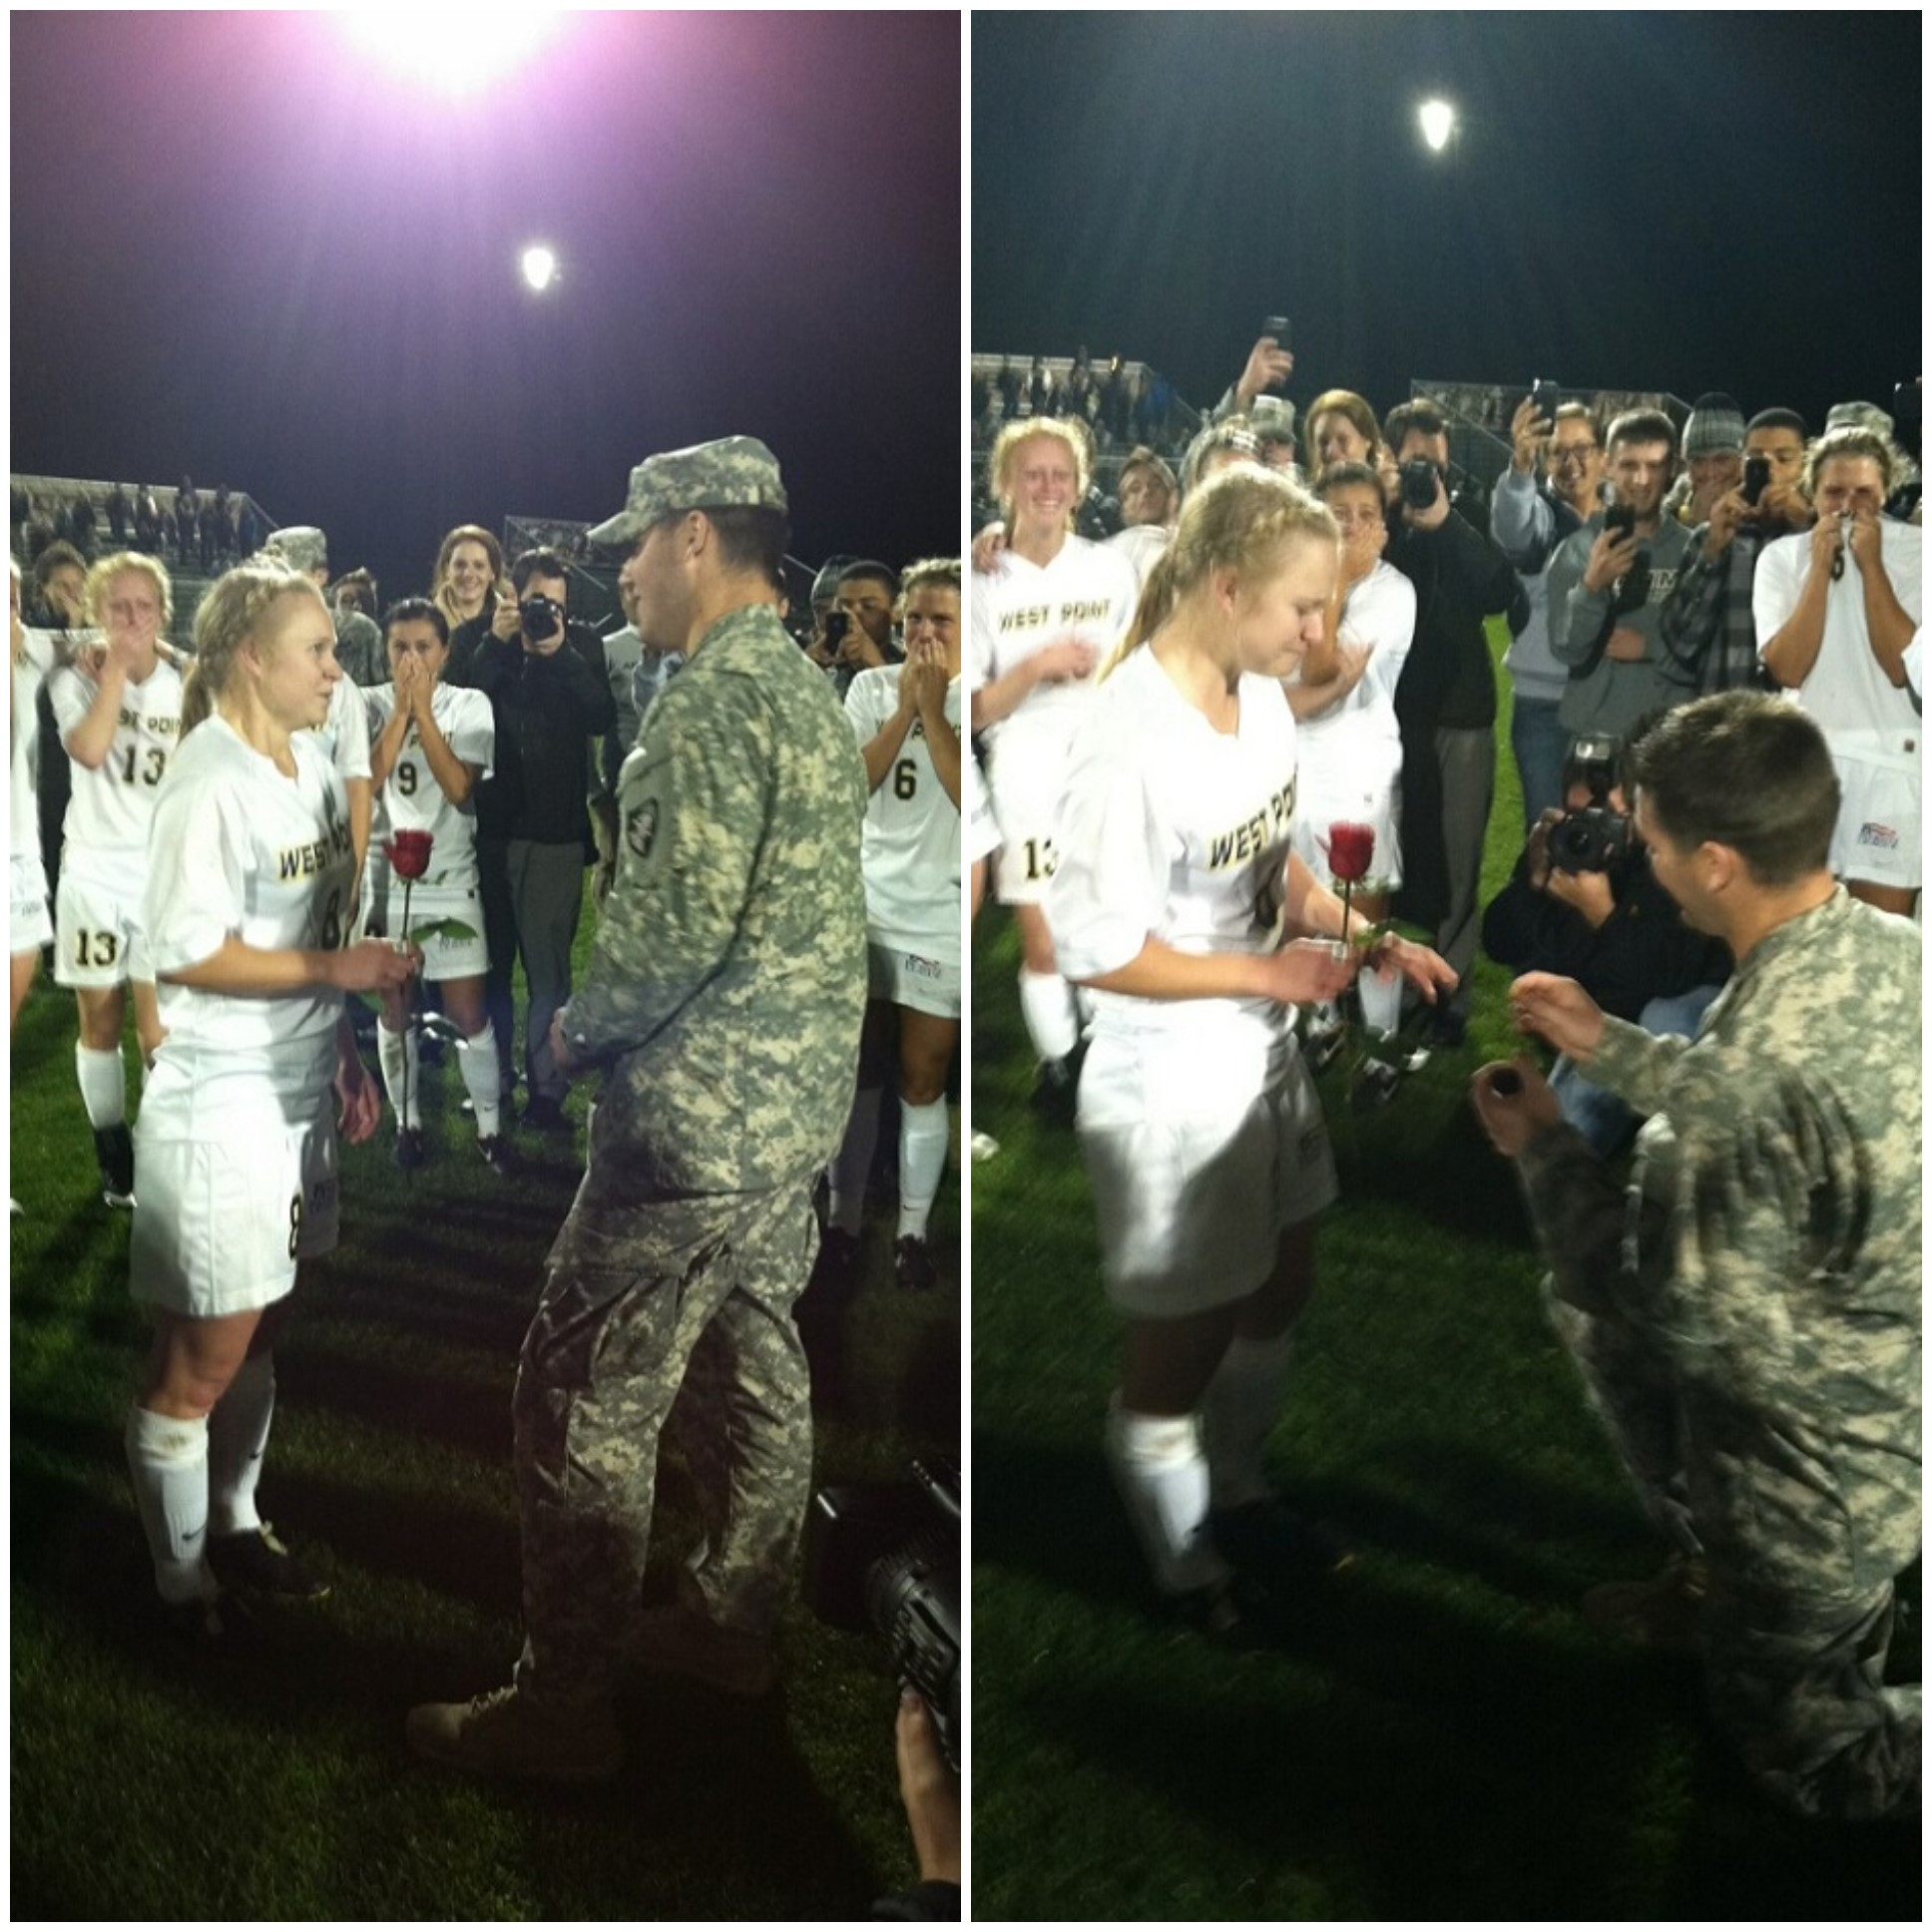 Image 3 of West Point Soccer Player Gets an On-Field Surprise